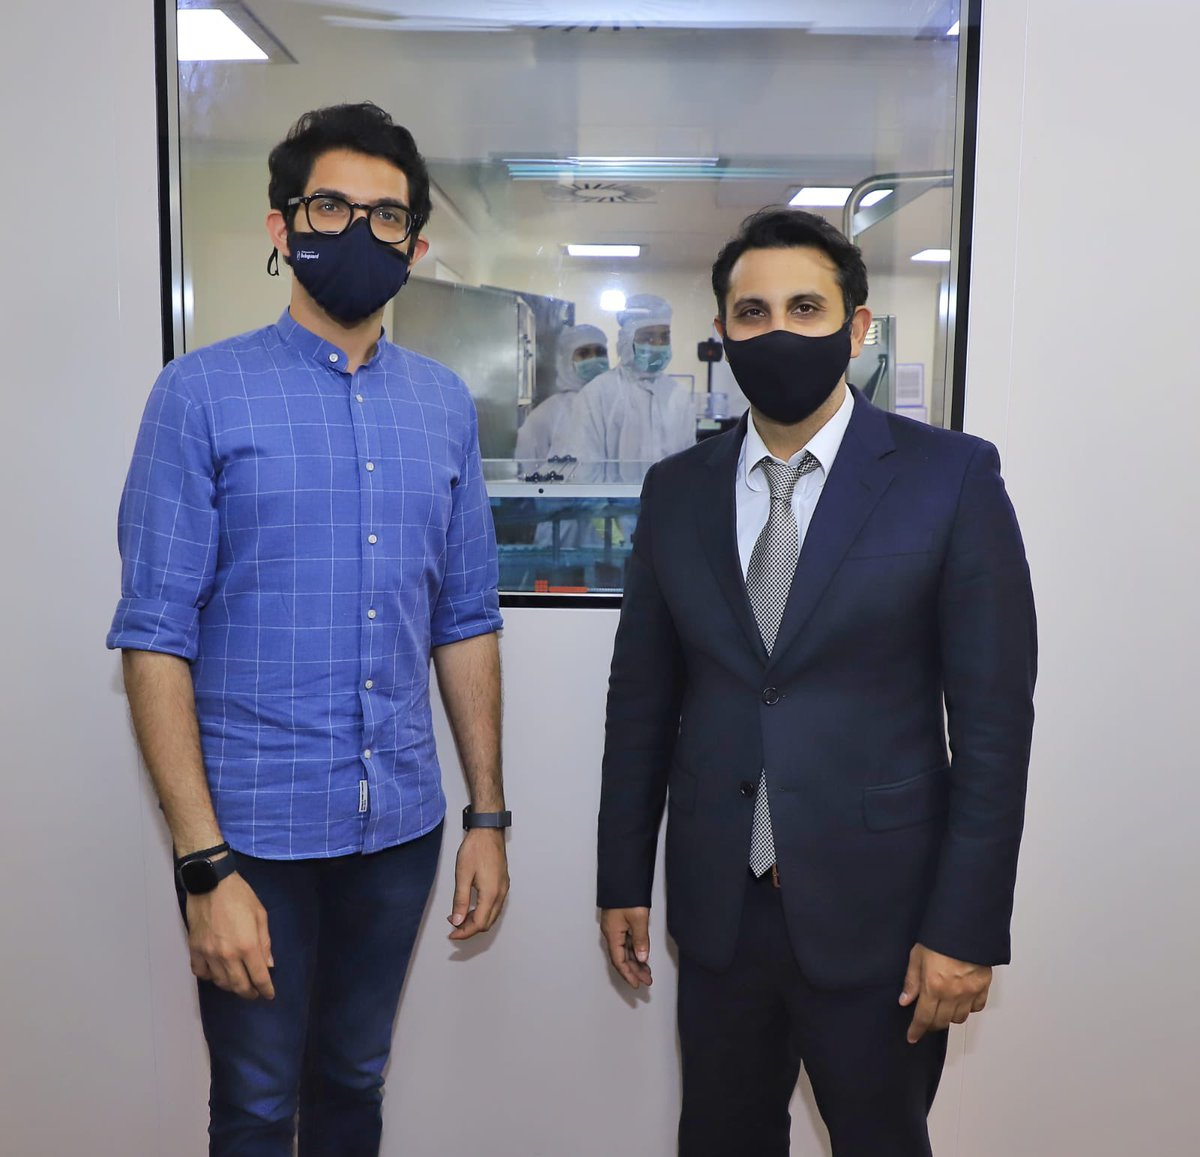 Even apart from just Covishield, the @SerumInstIndia and the Poonawala family are something we as Indians should be proud of. The scale of their contribution to the global medical world is tremendous.